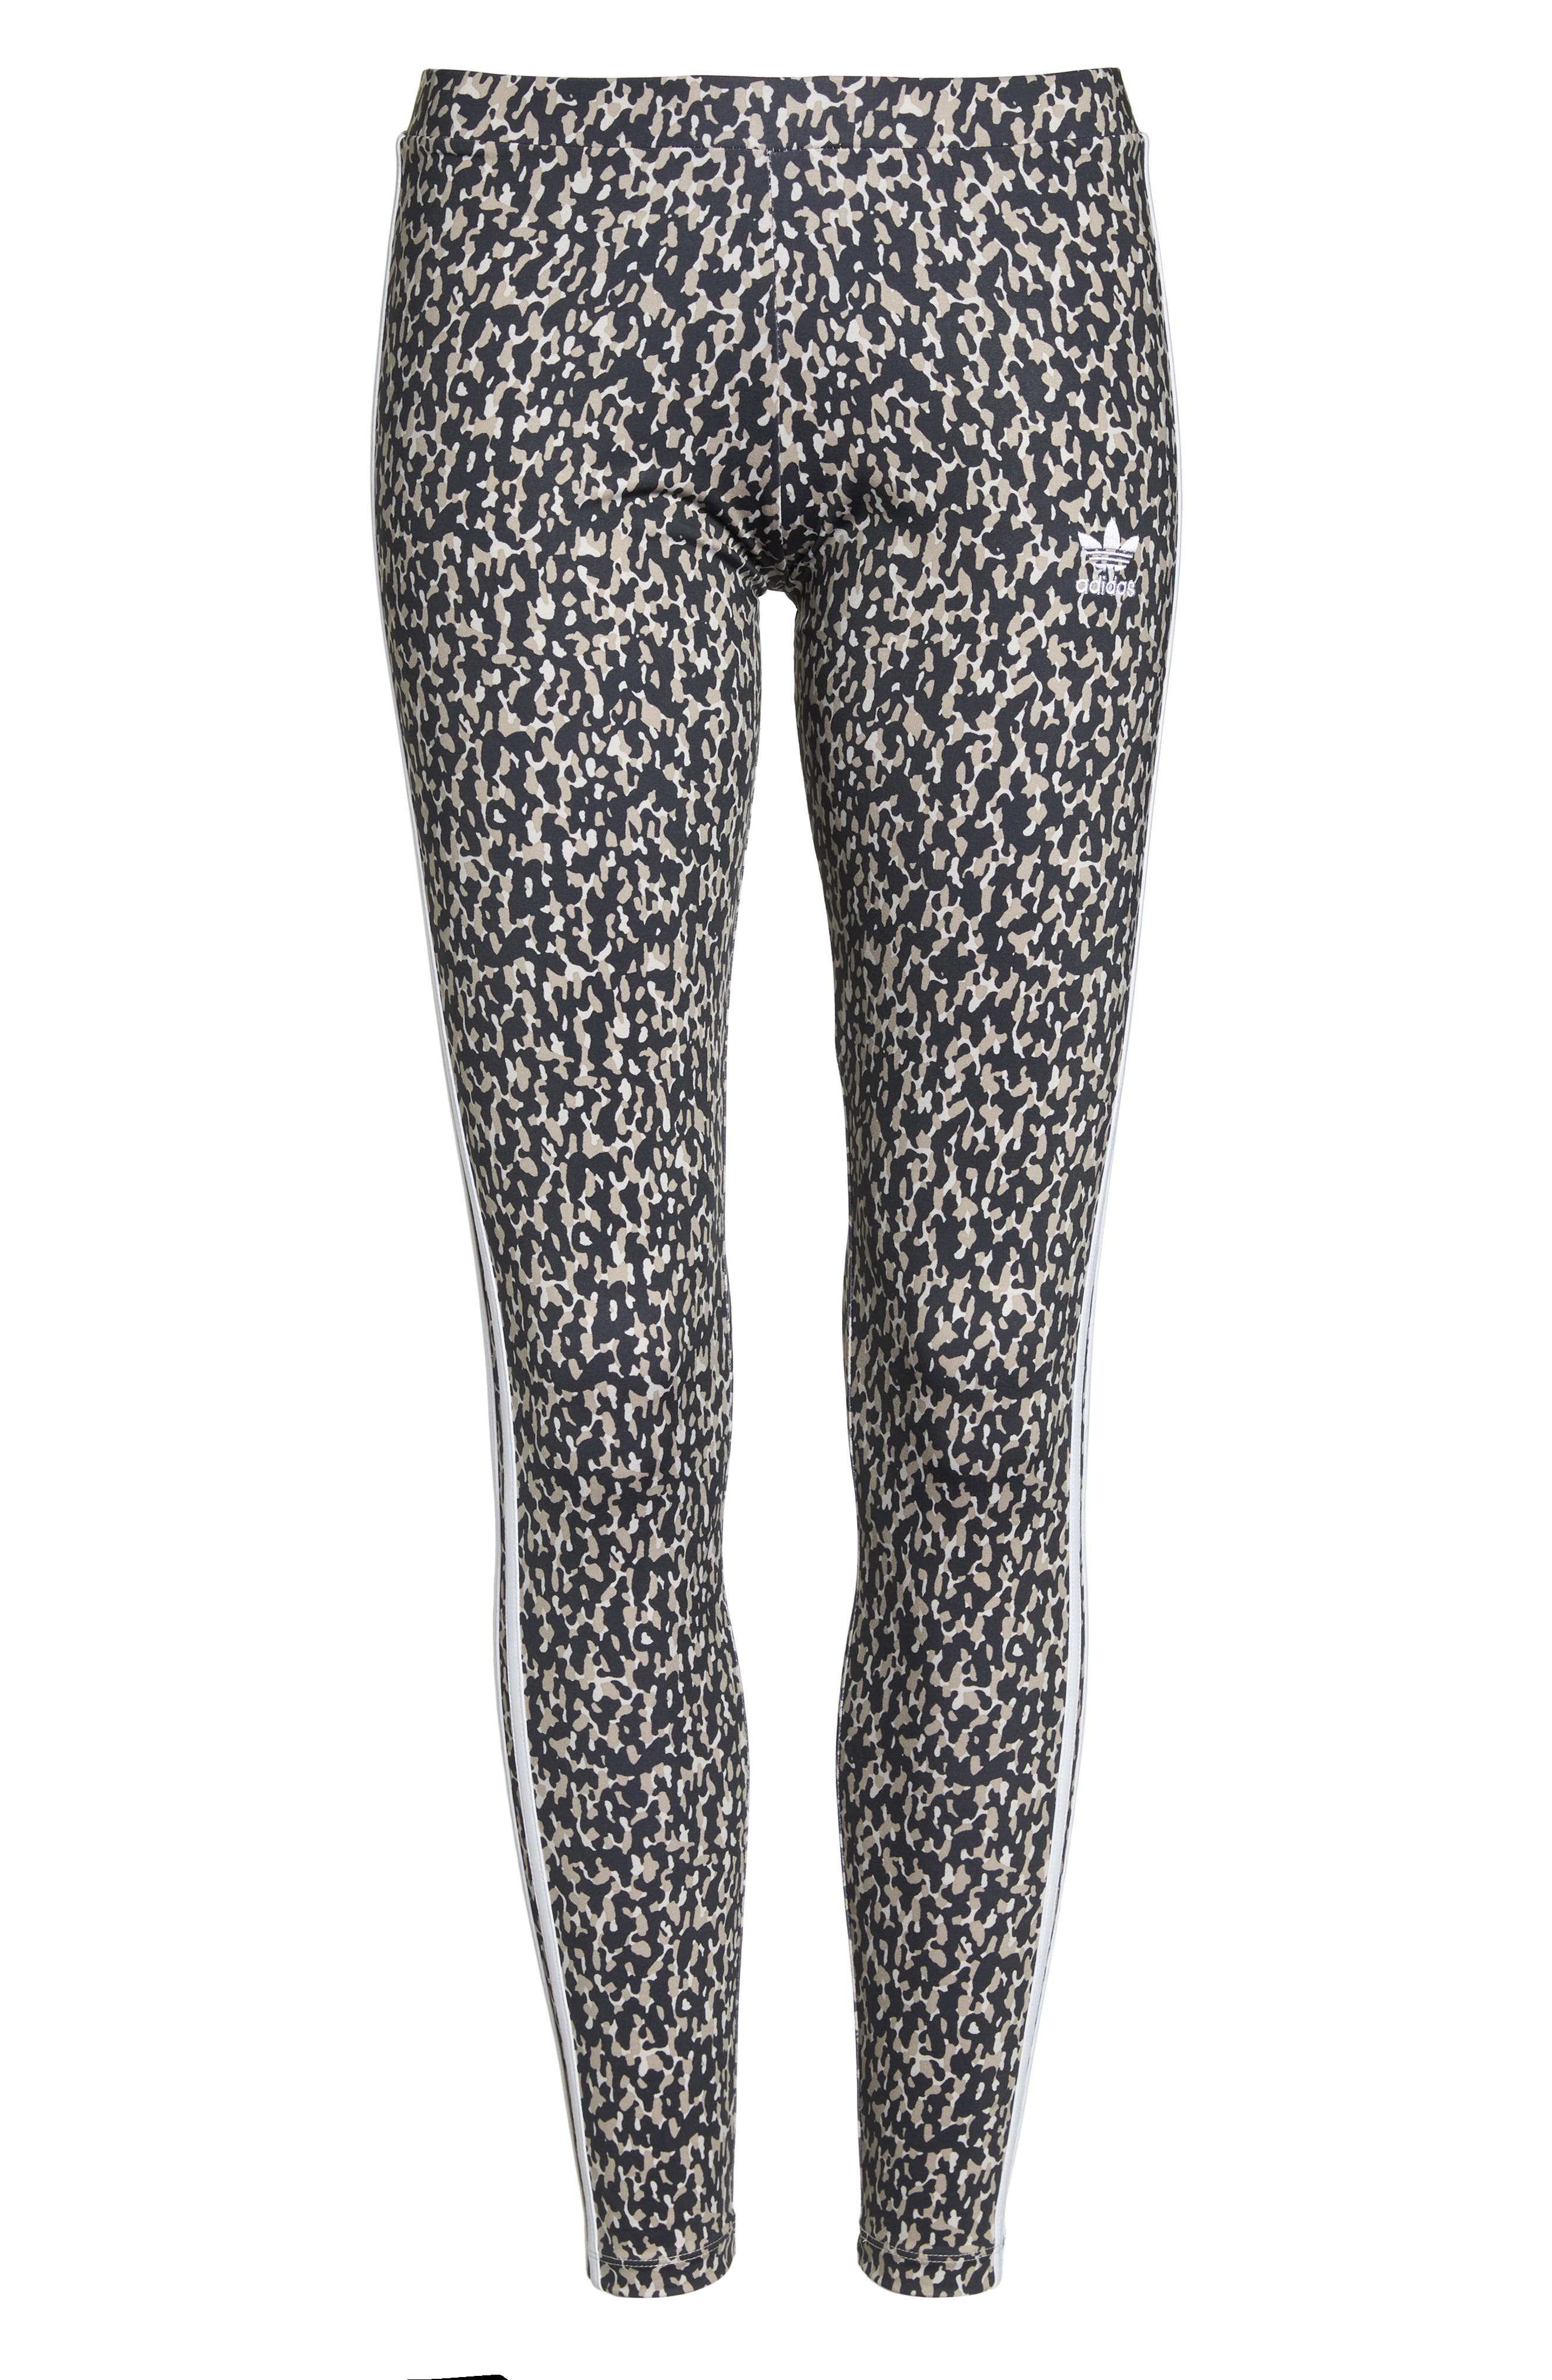 Leopard Camo Leggings,                             Alternate thumbnail 6, color,                             Leoflage Aop